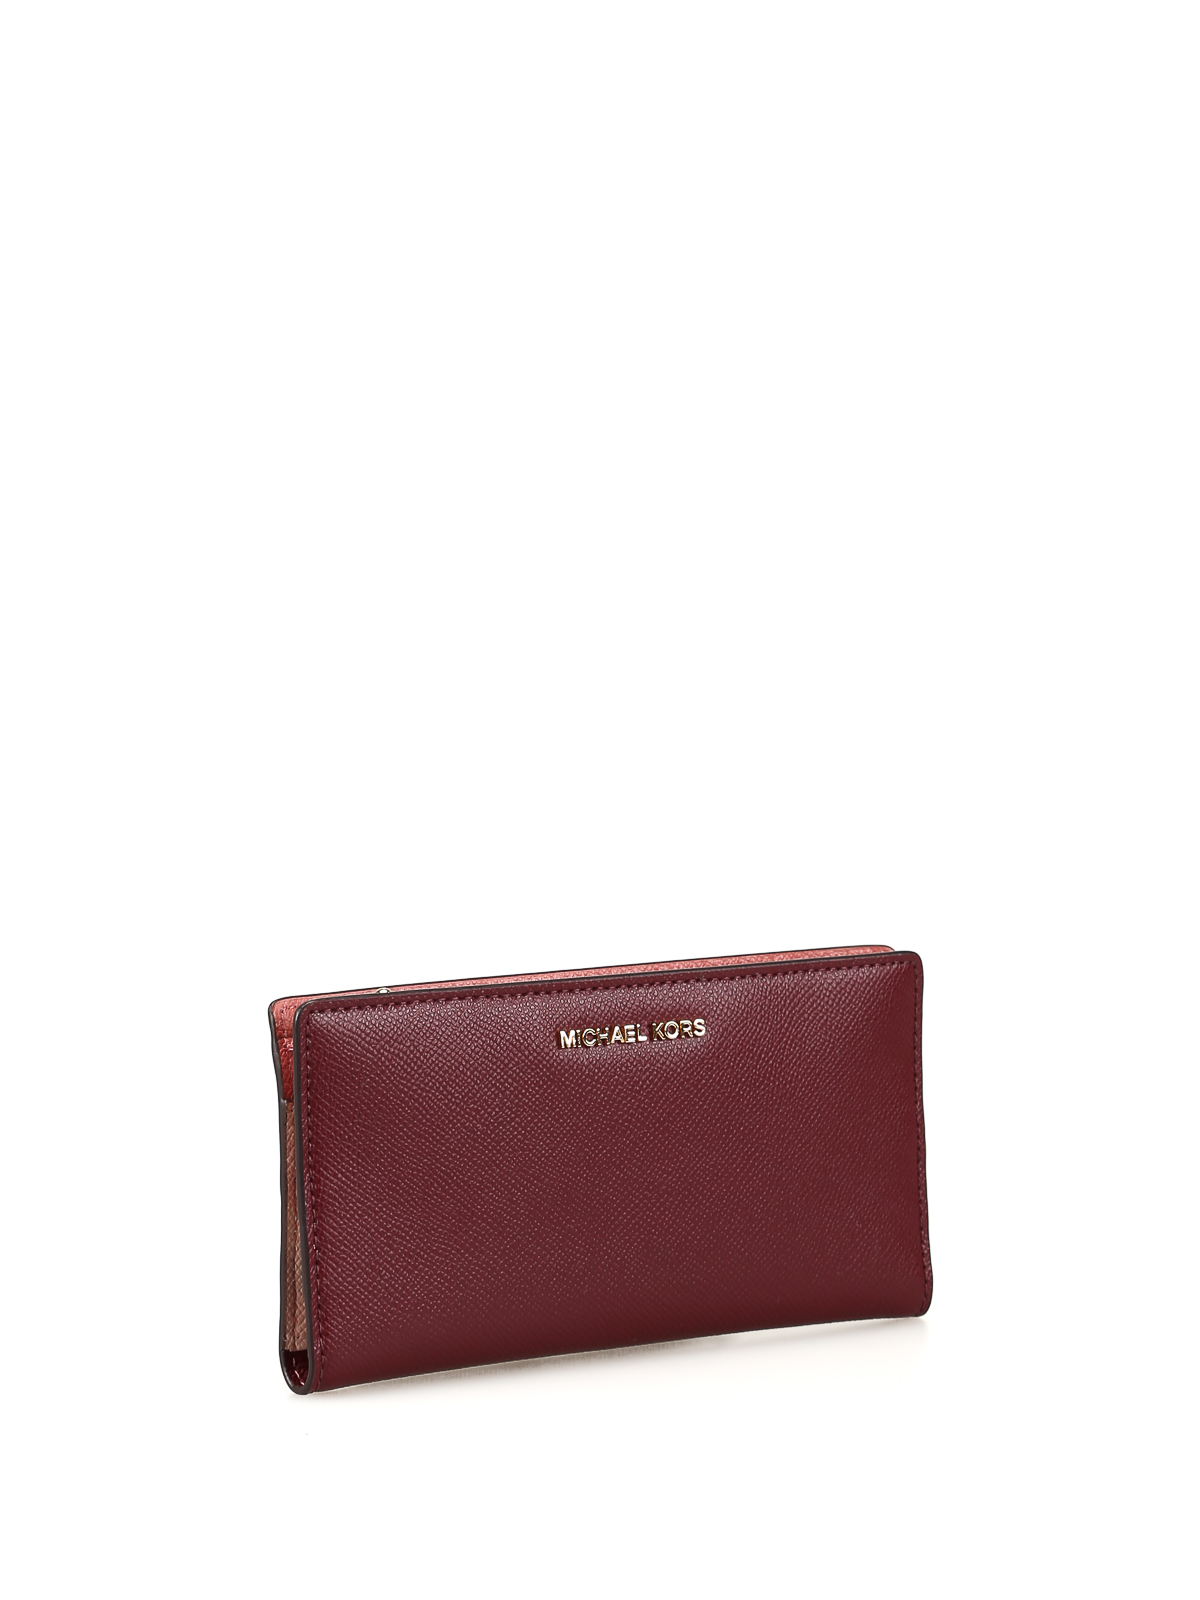 a19db69668139 MICHAEL KORS  wallets   purses online - Money Pieces wallet with card holder